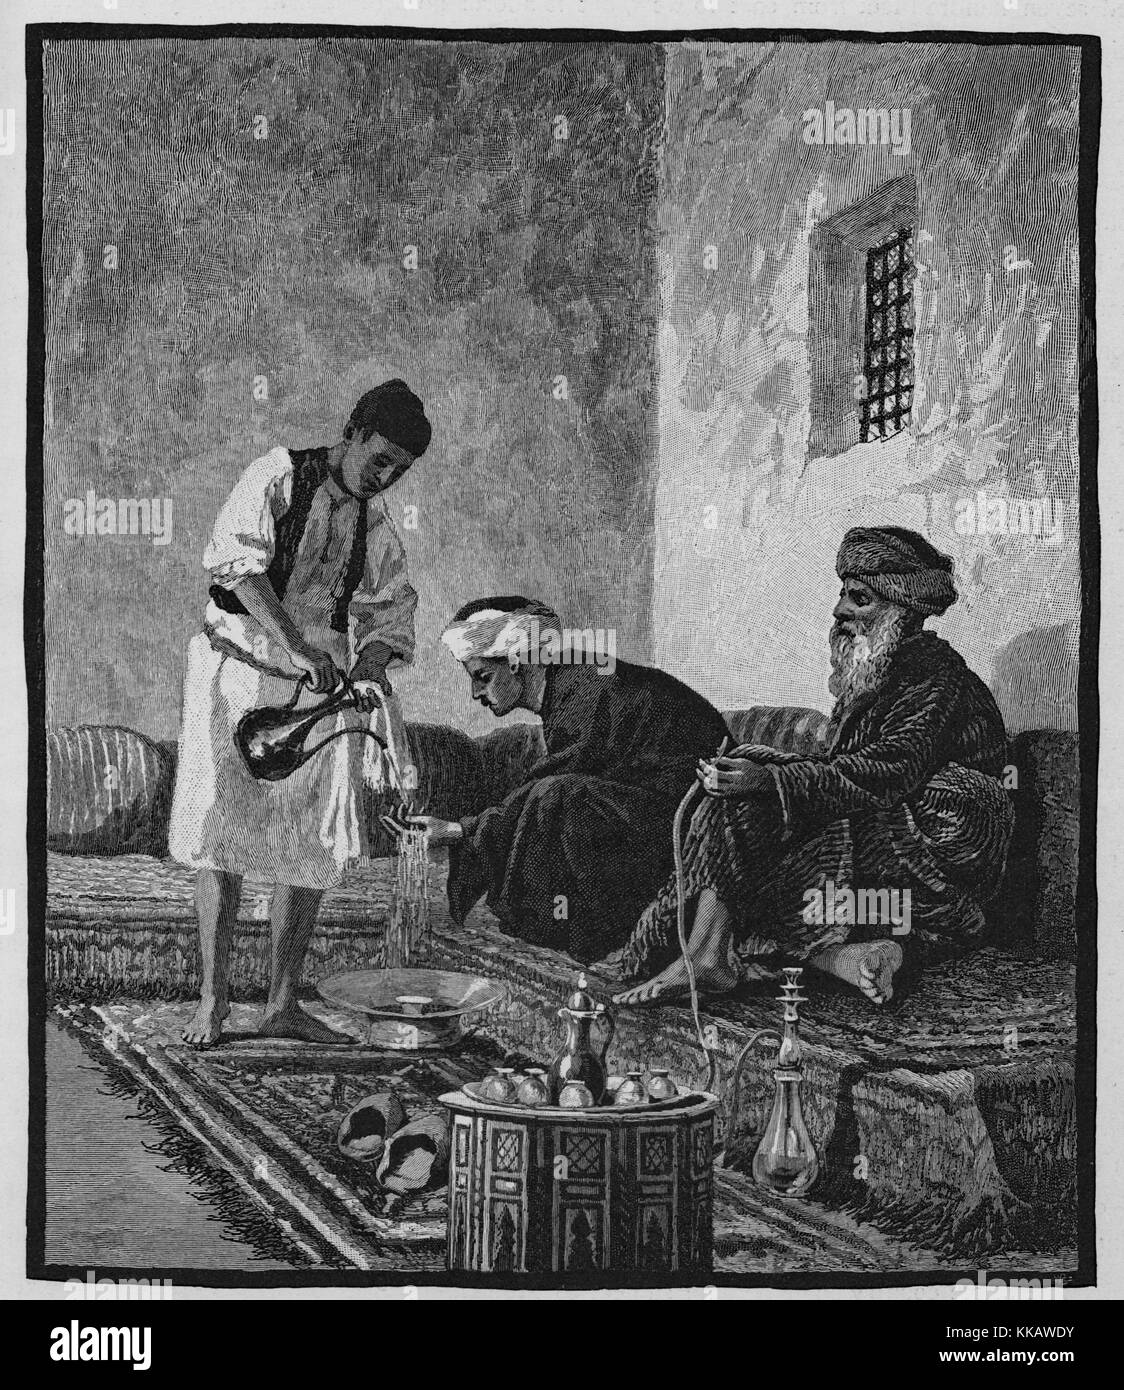 An engraving showing the ritual washing of hands after eating a meal known as ablution, a man using a container - Stock Image